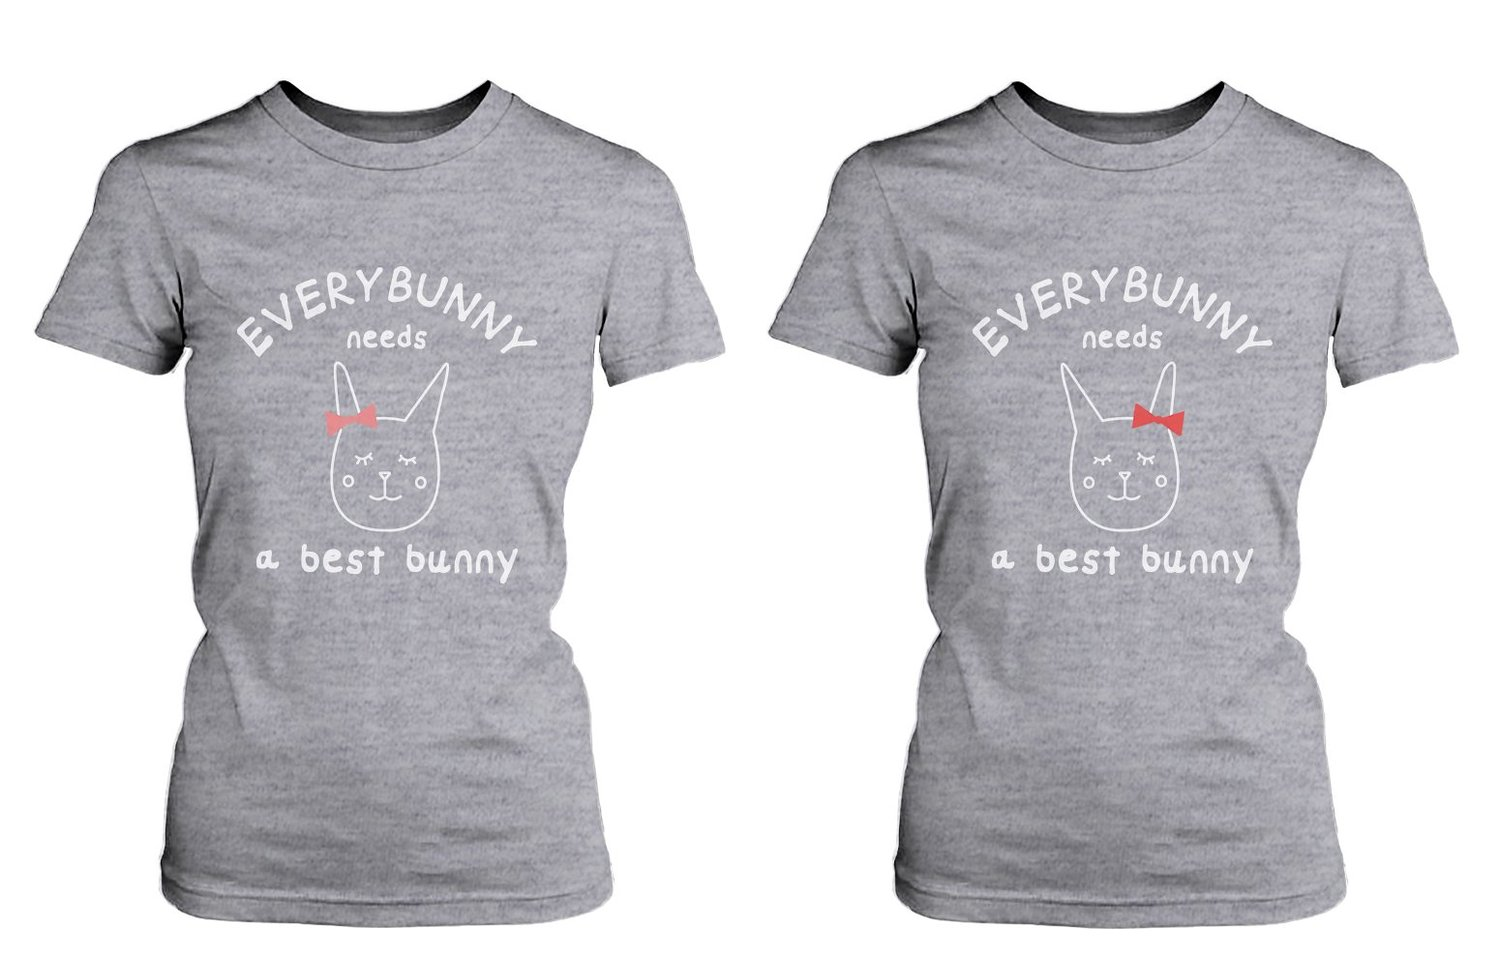 1f10bf374 Amazon.com  Cute Best Friend T Shirts - Everybunny Needs a Best ...